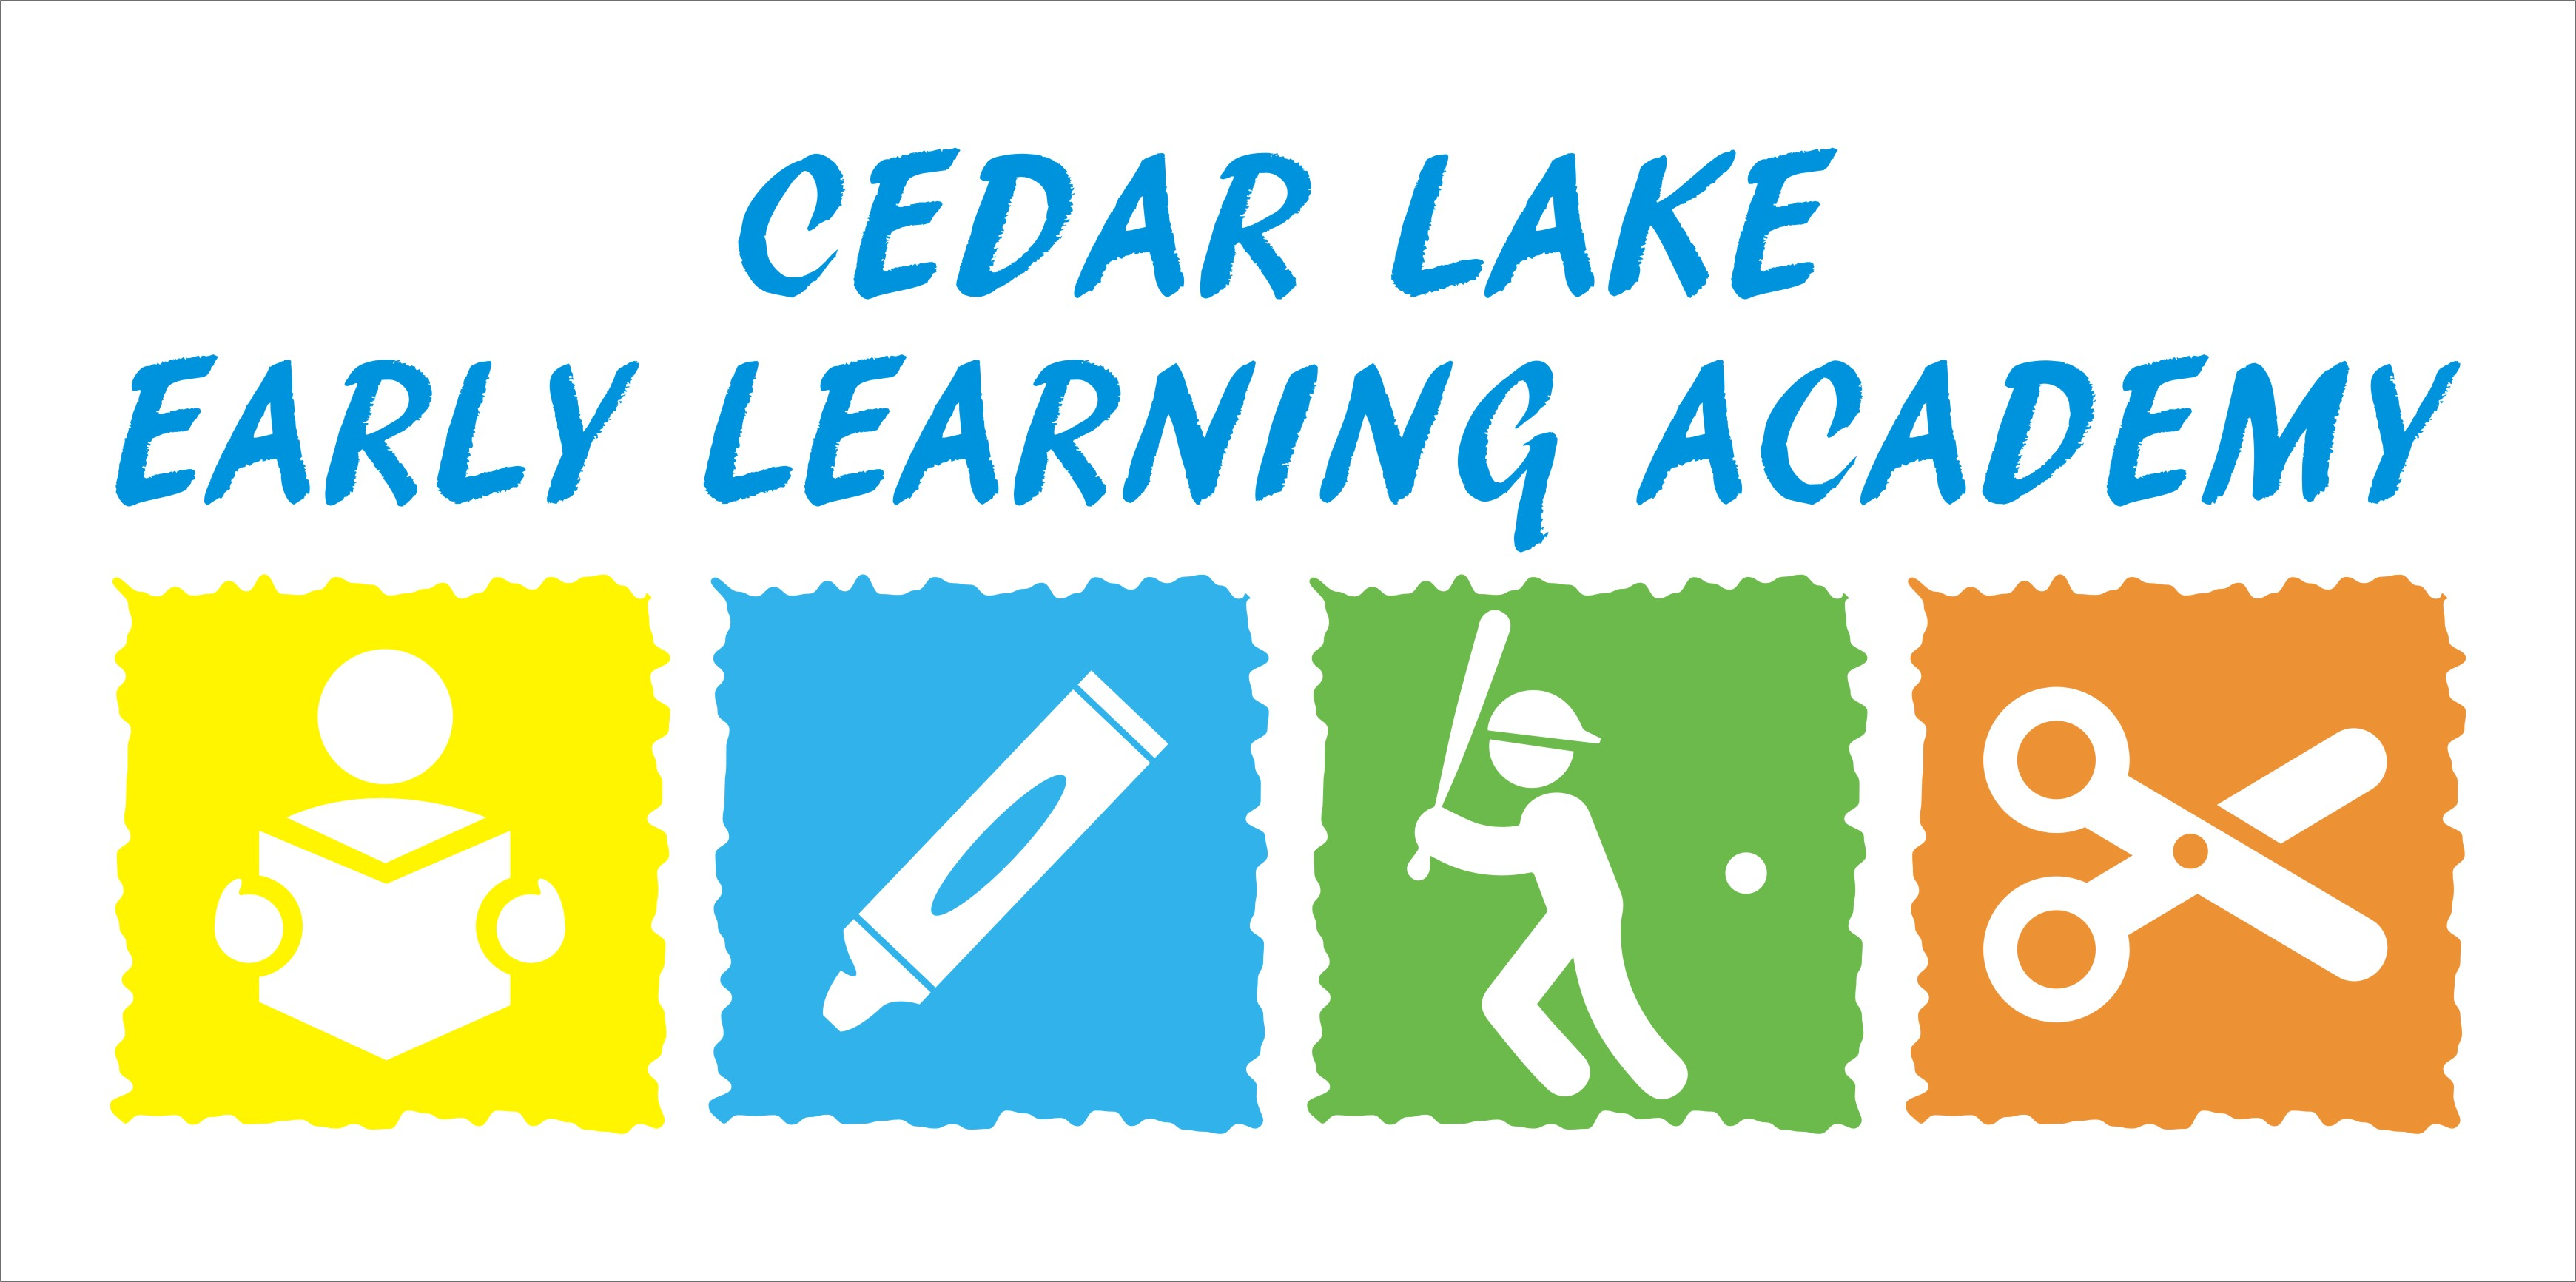 Cedar Lake Early Learning Academy